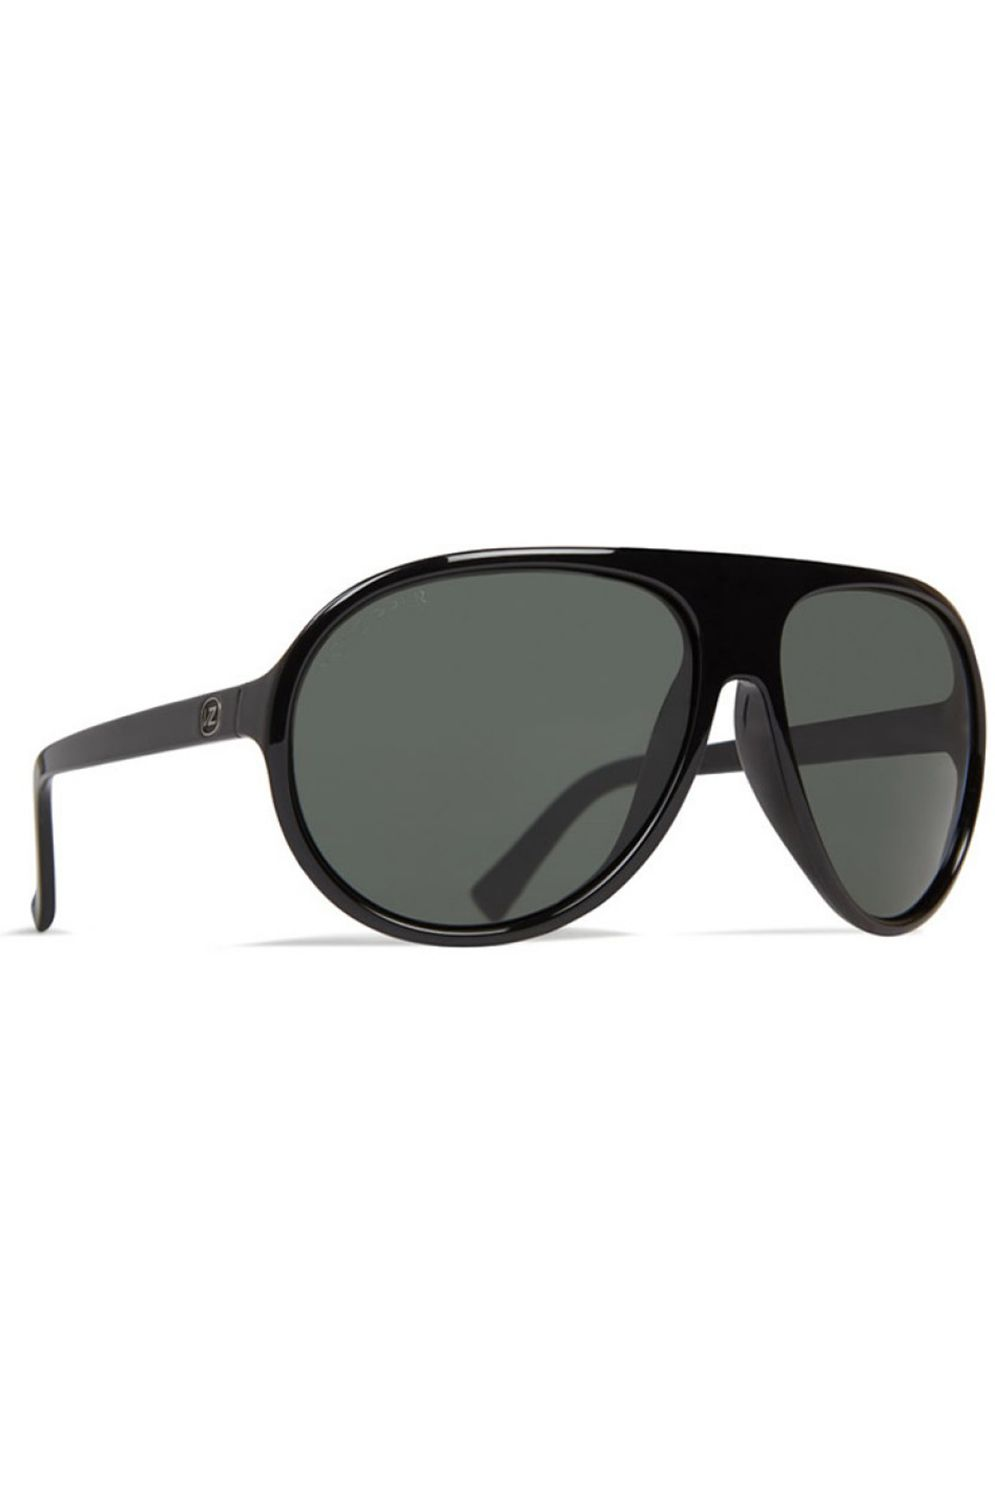 Oculos VonZipper ROCKFORD (LTD REVIVAL) Black Satin-Gloss / Smoke Grey